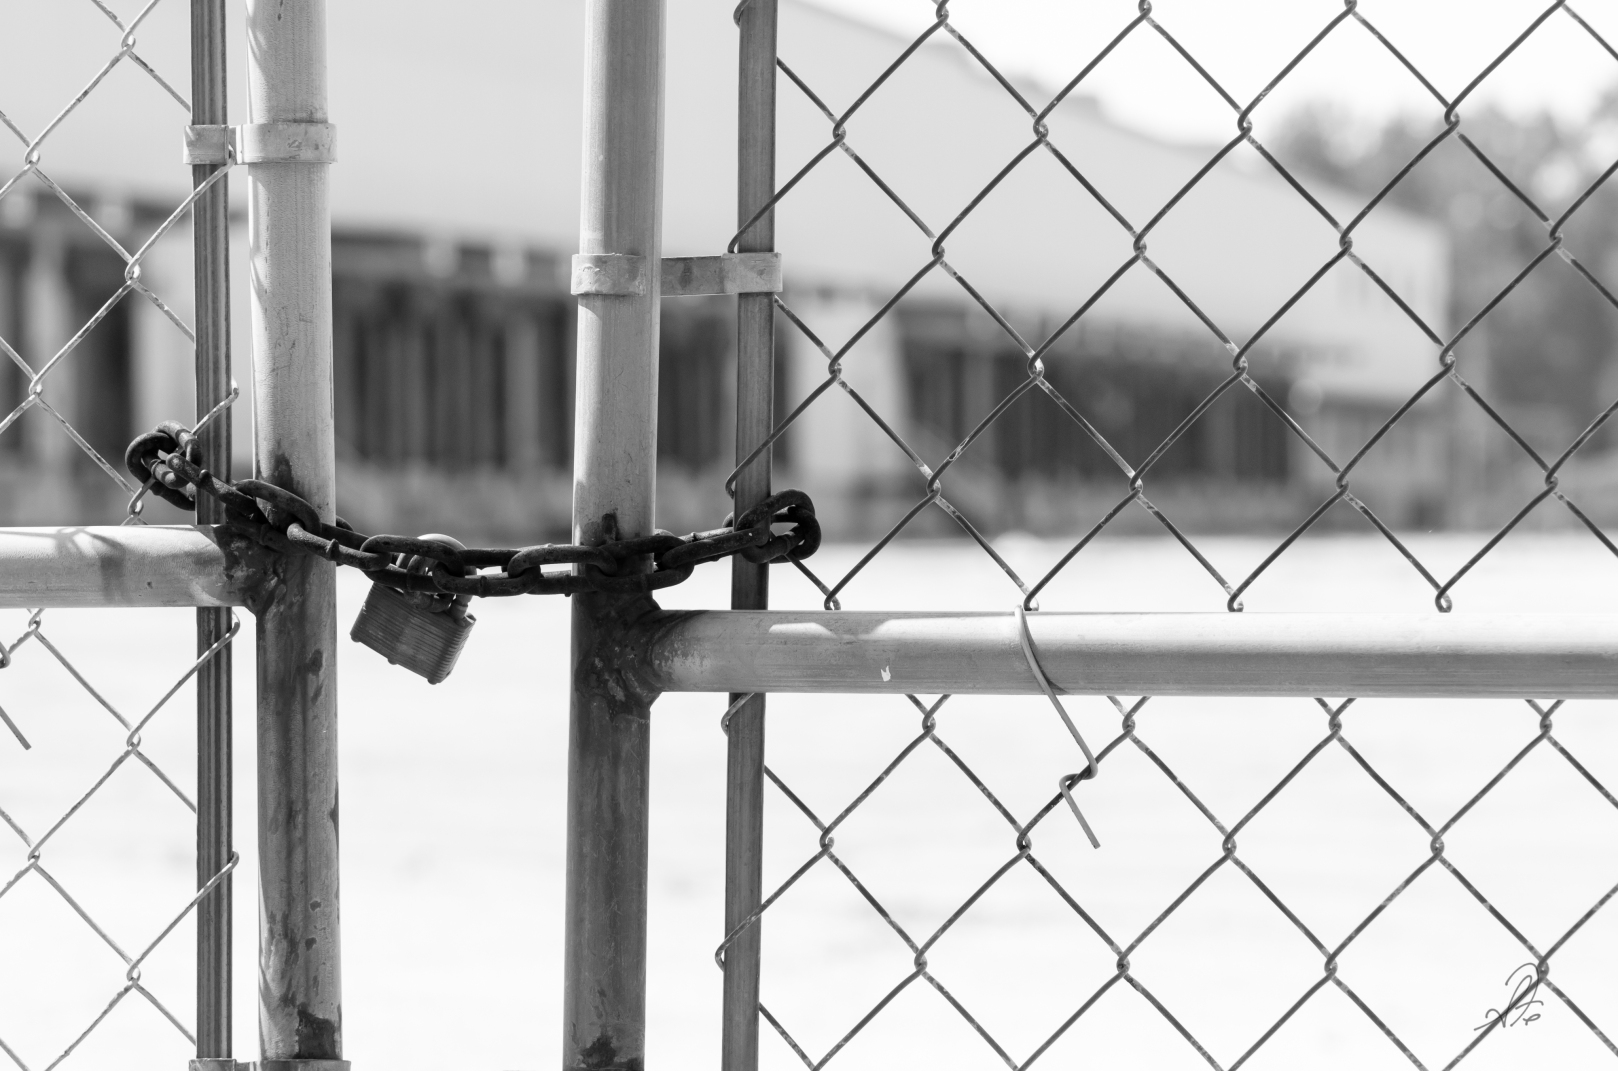 Old Factory Gate Locked